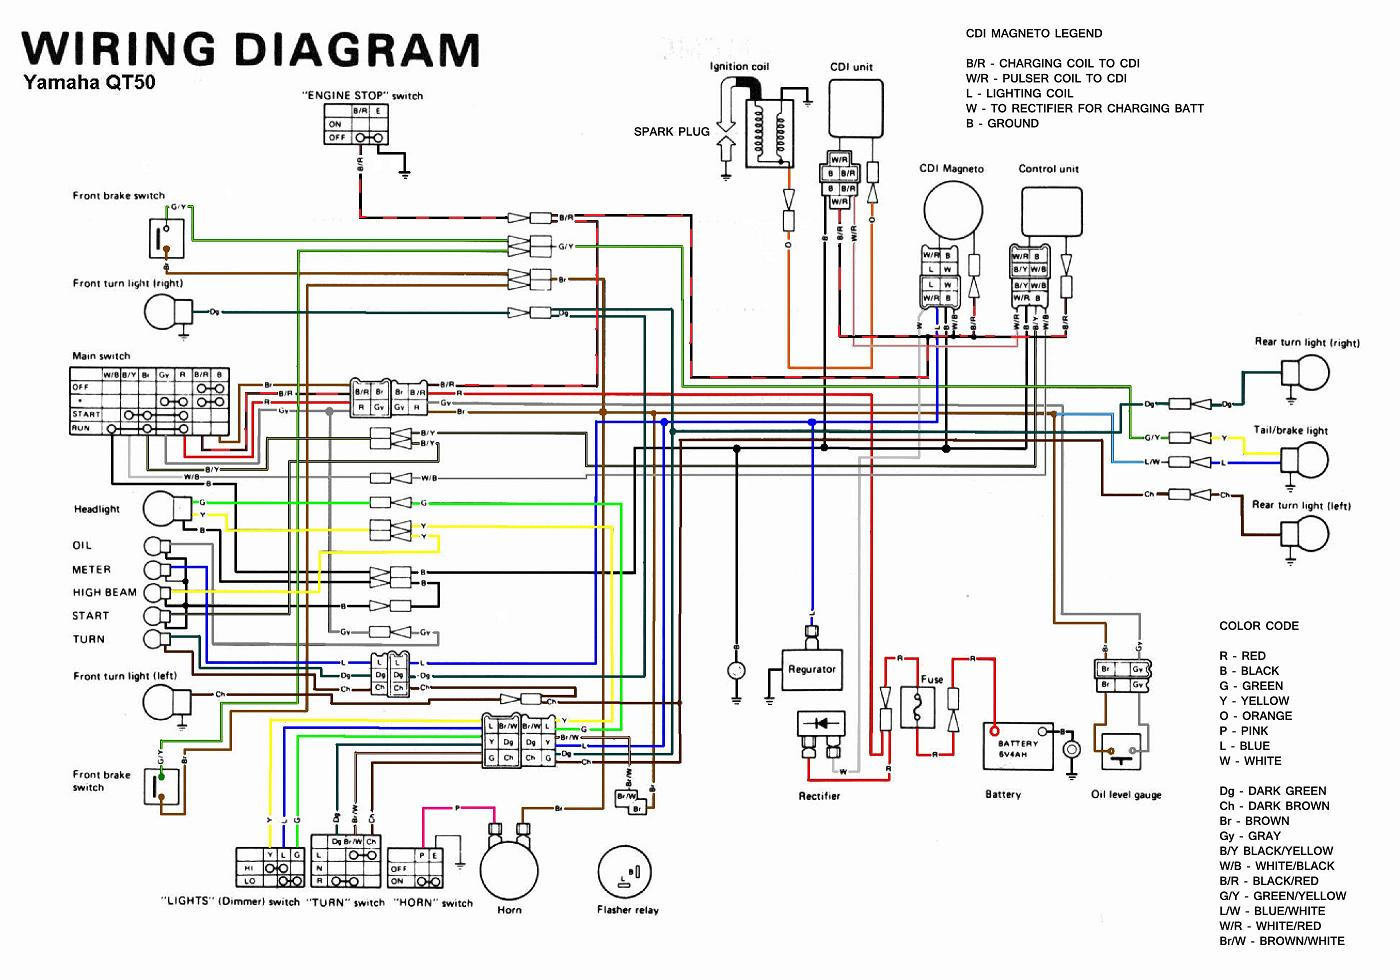 Kz900 wiring diagram